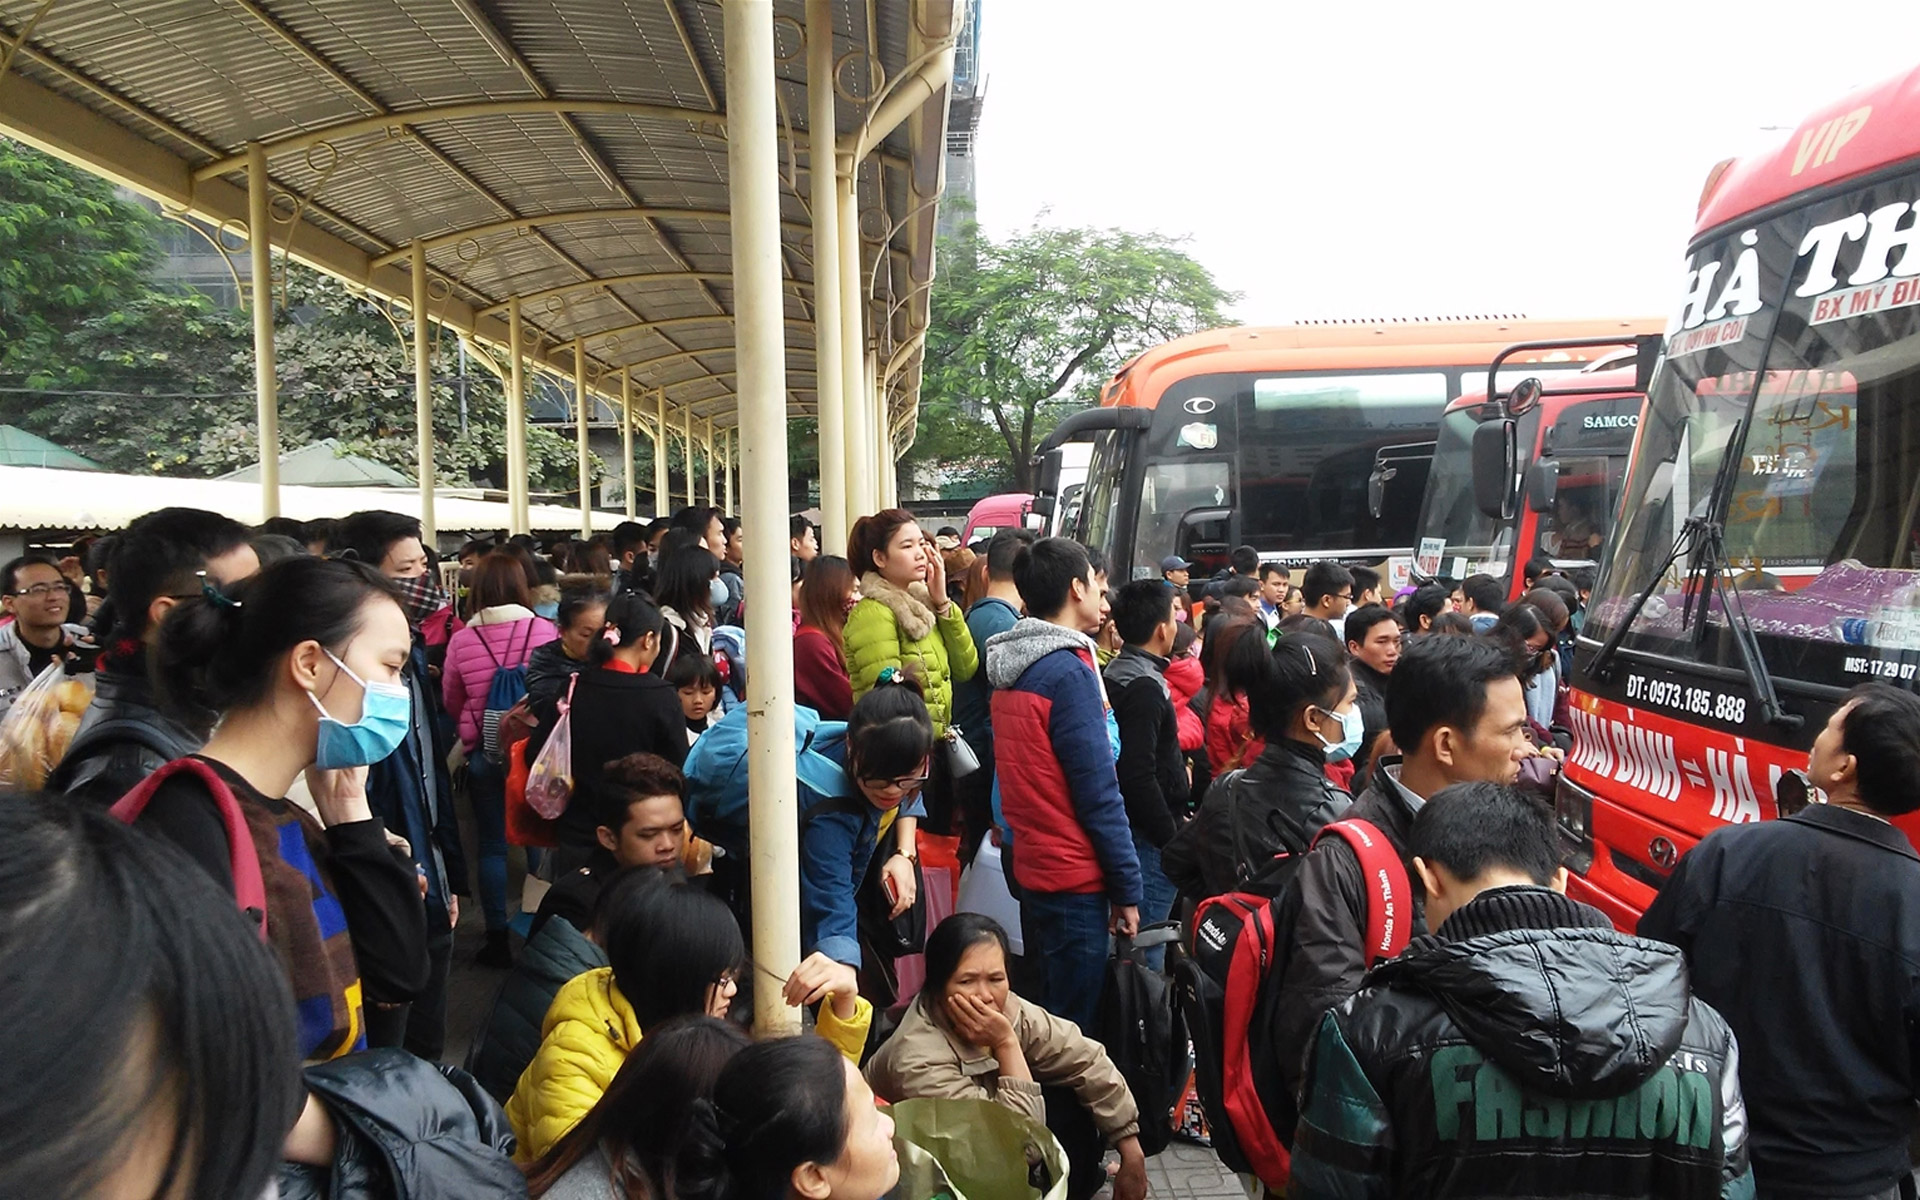 a crowded bus station